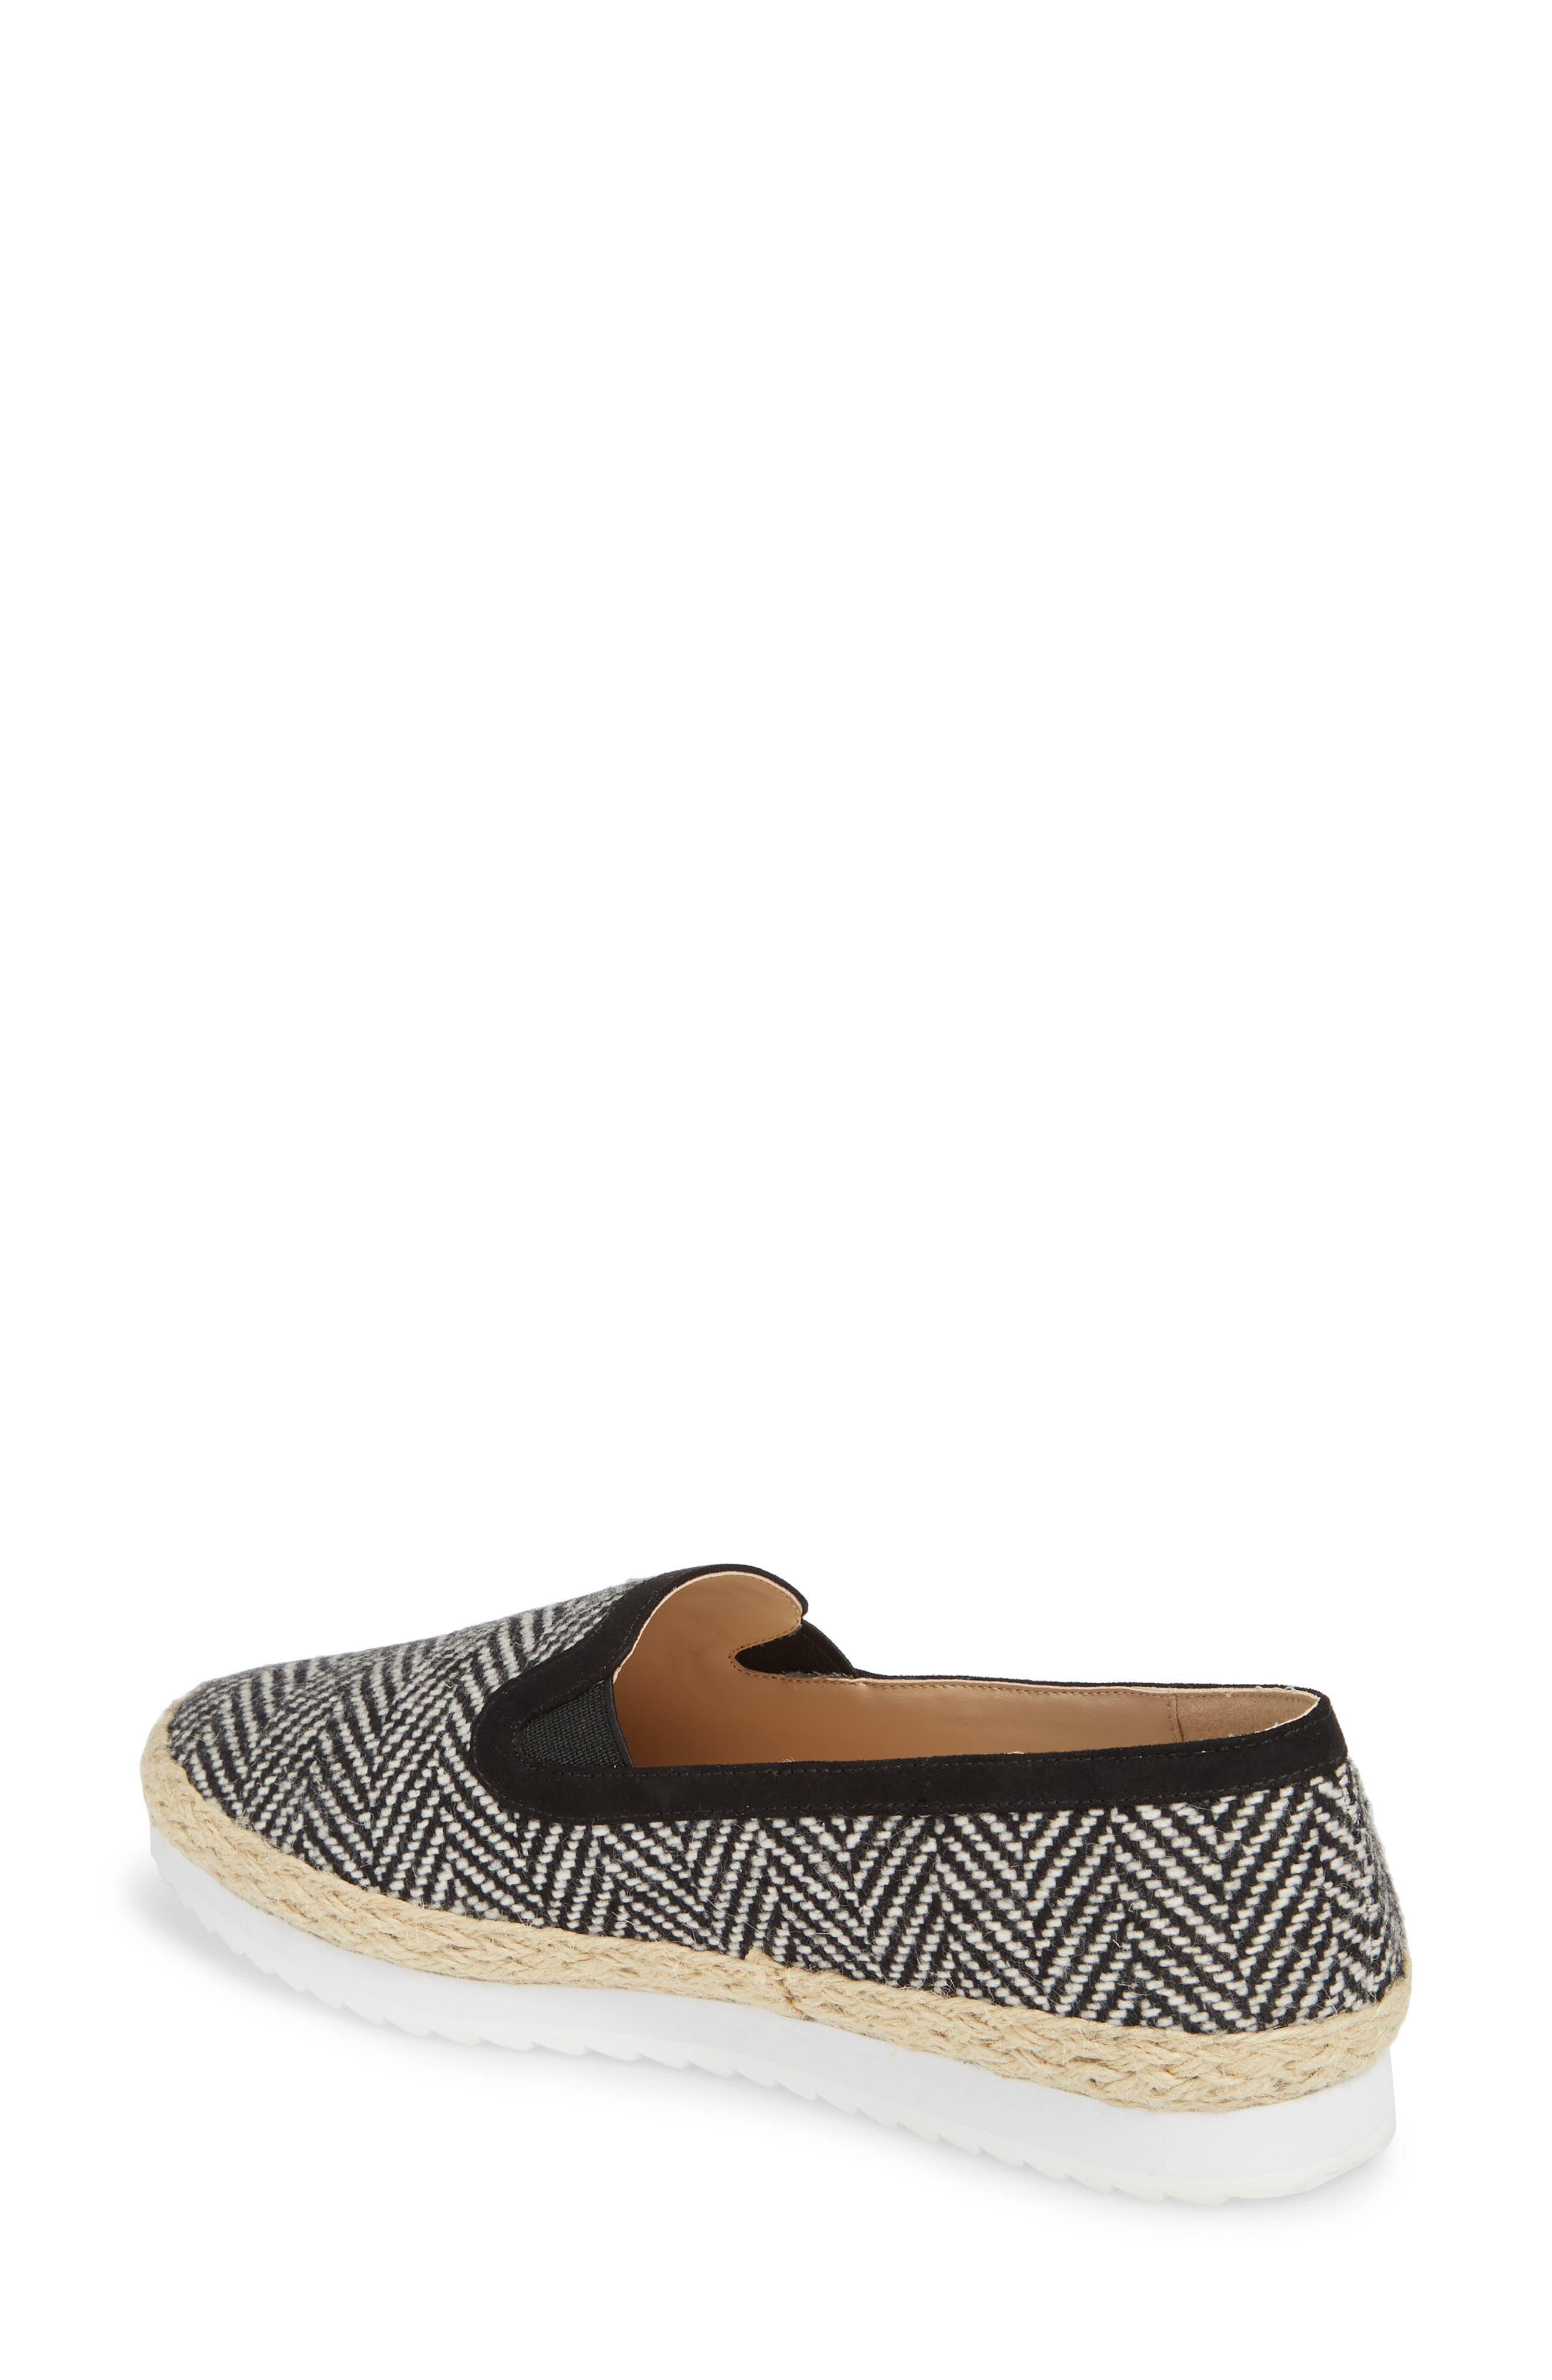 Tight Line Espadrille Flat,                             Alternate thumbnail 2, color,                             BLACK HOUNDSTOOTH FABRIC